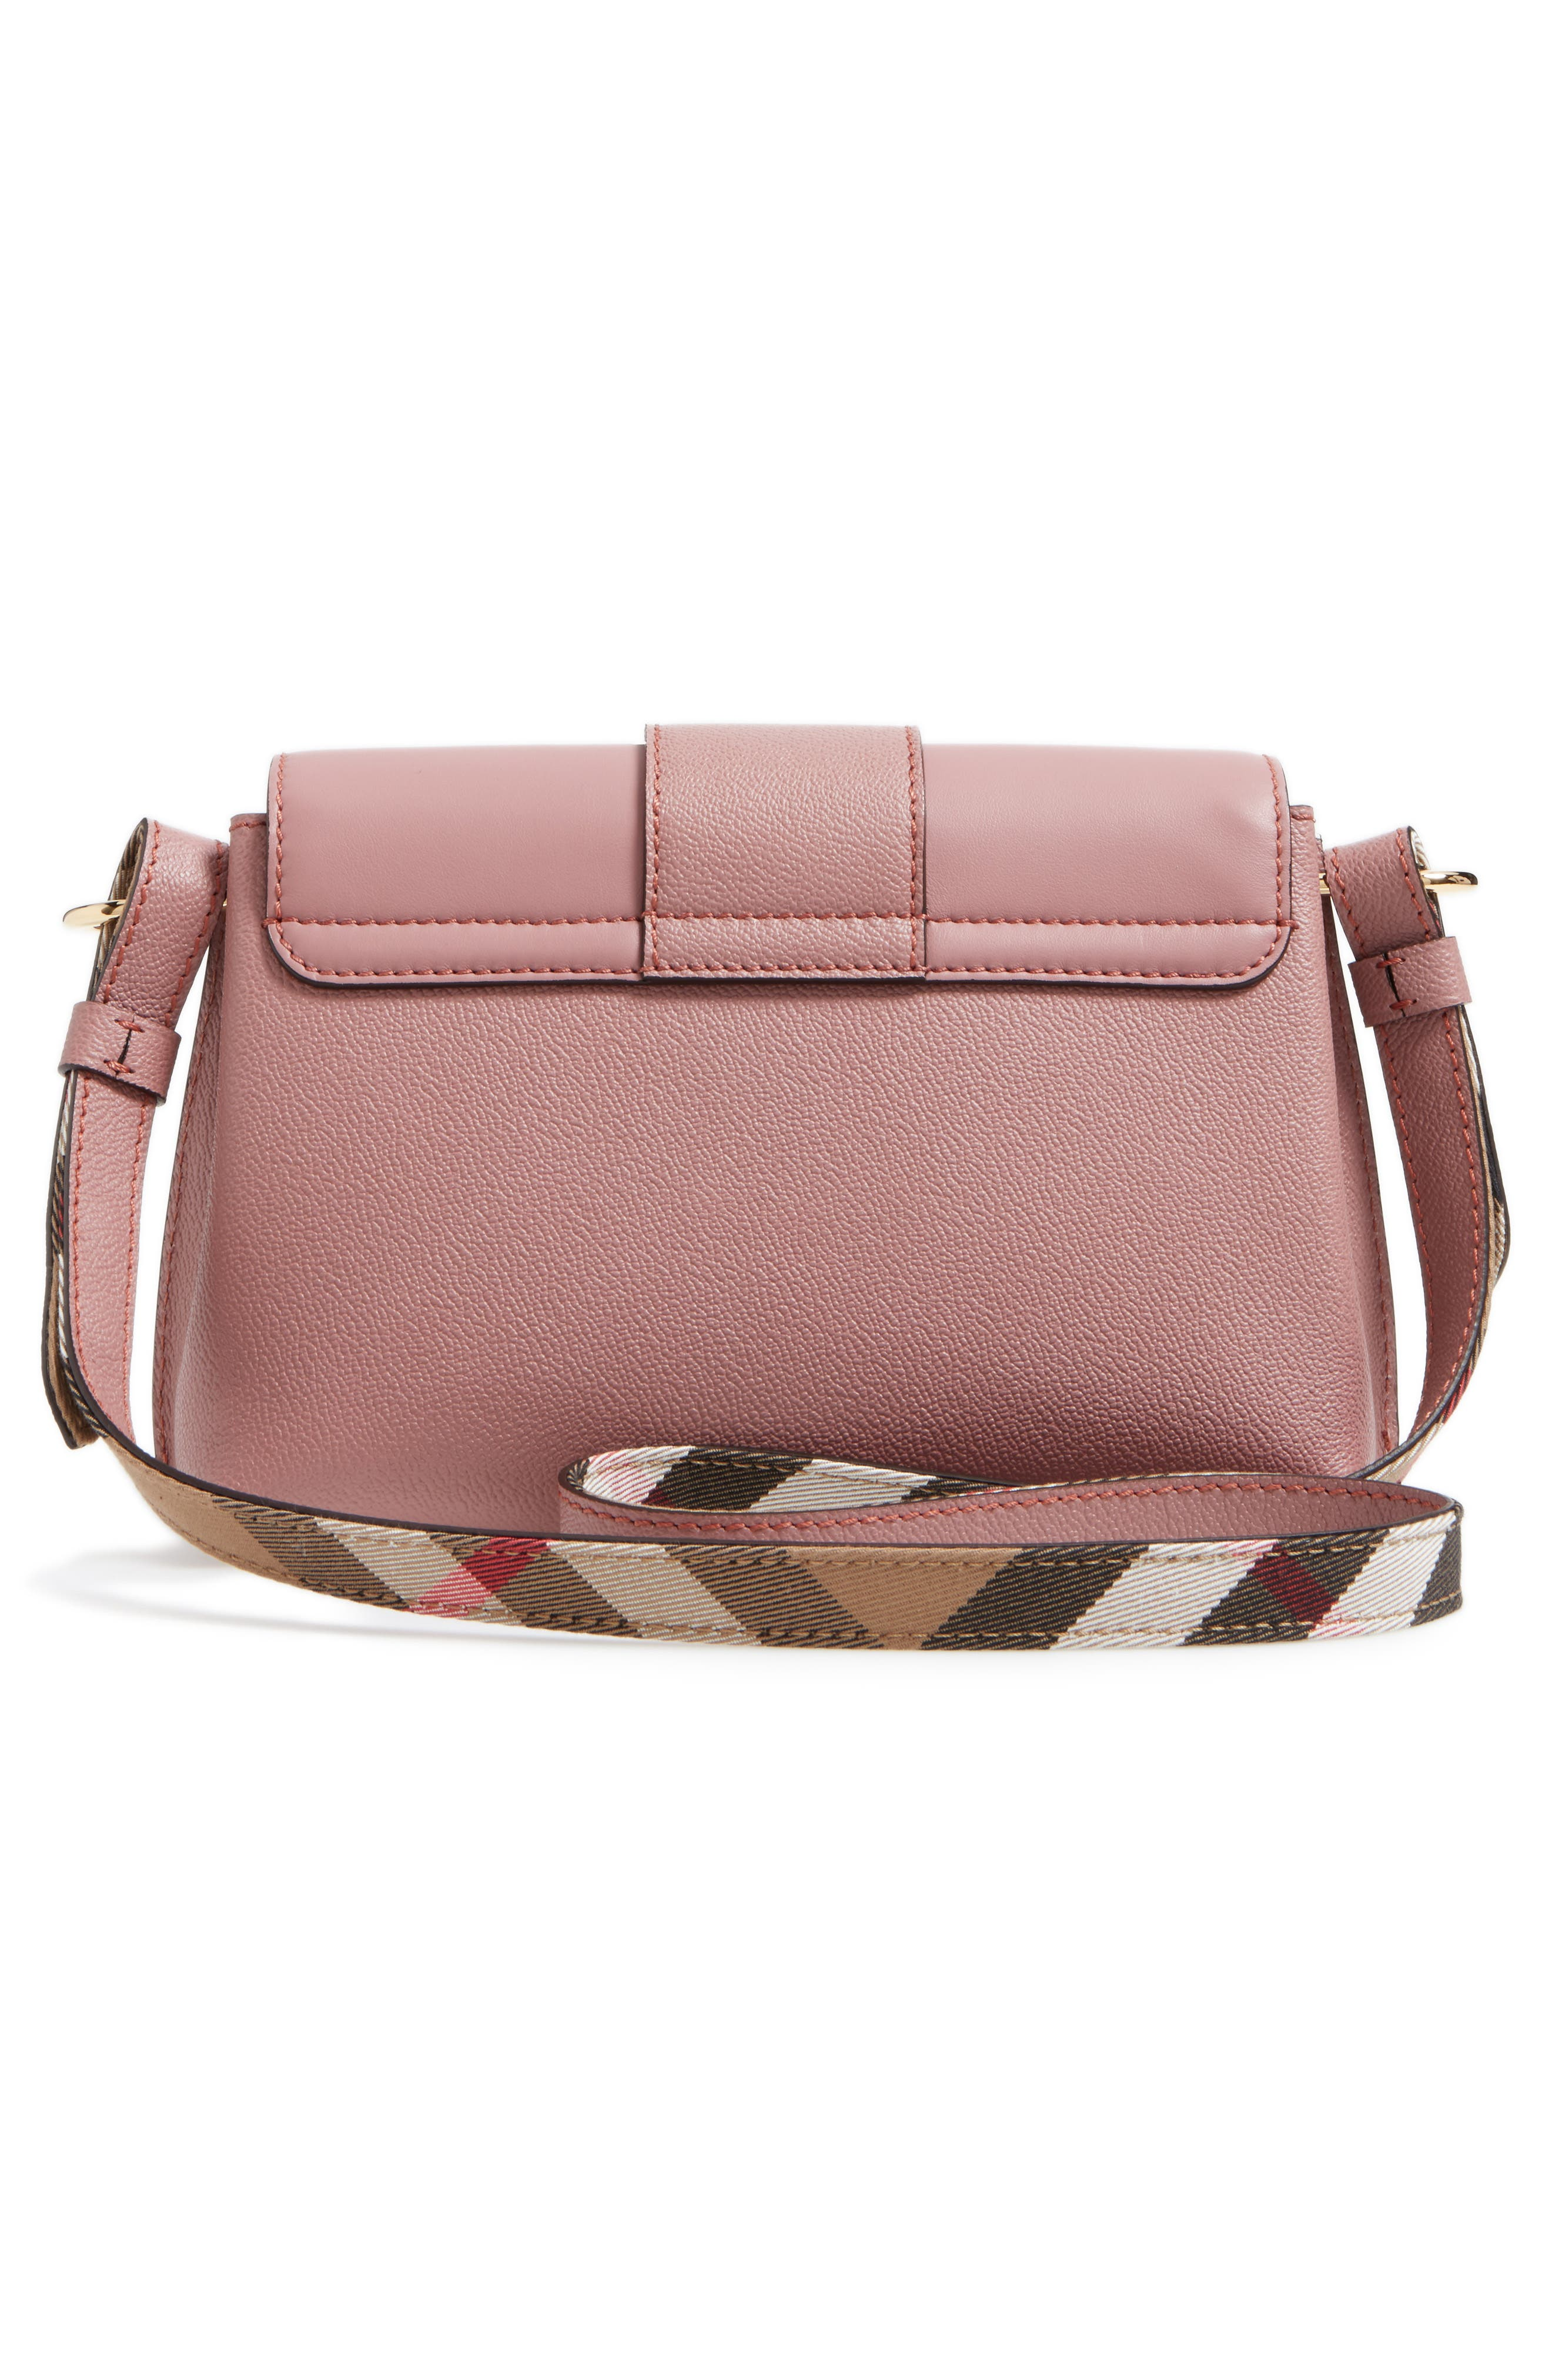 Small Medley Leather Shoulder Bag,                             Alternate thumbnail 3, color,                             Dusty Pink